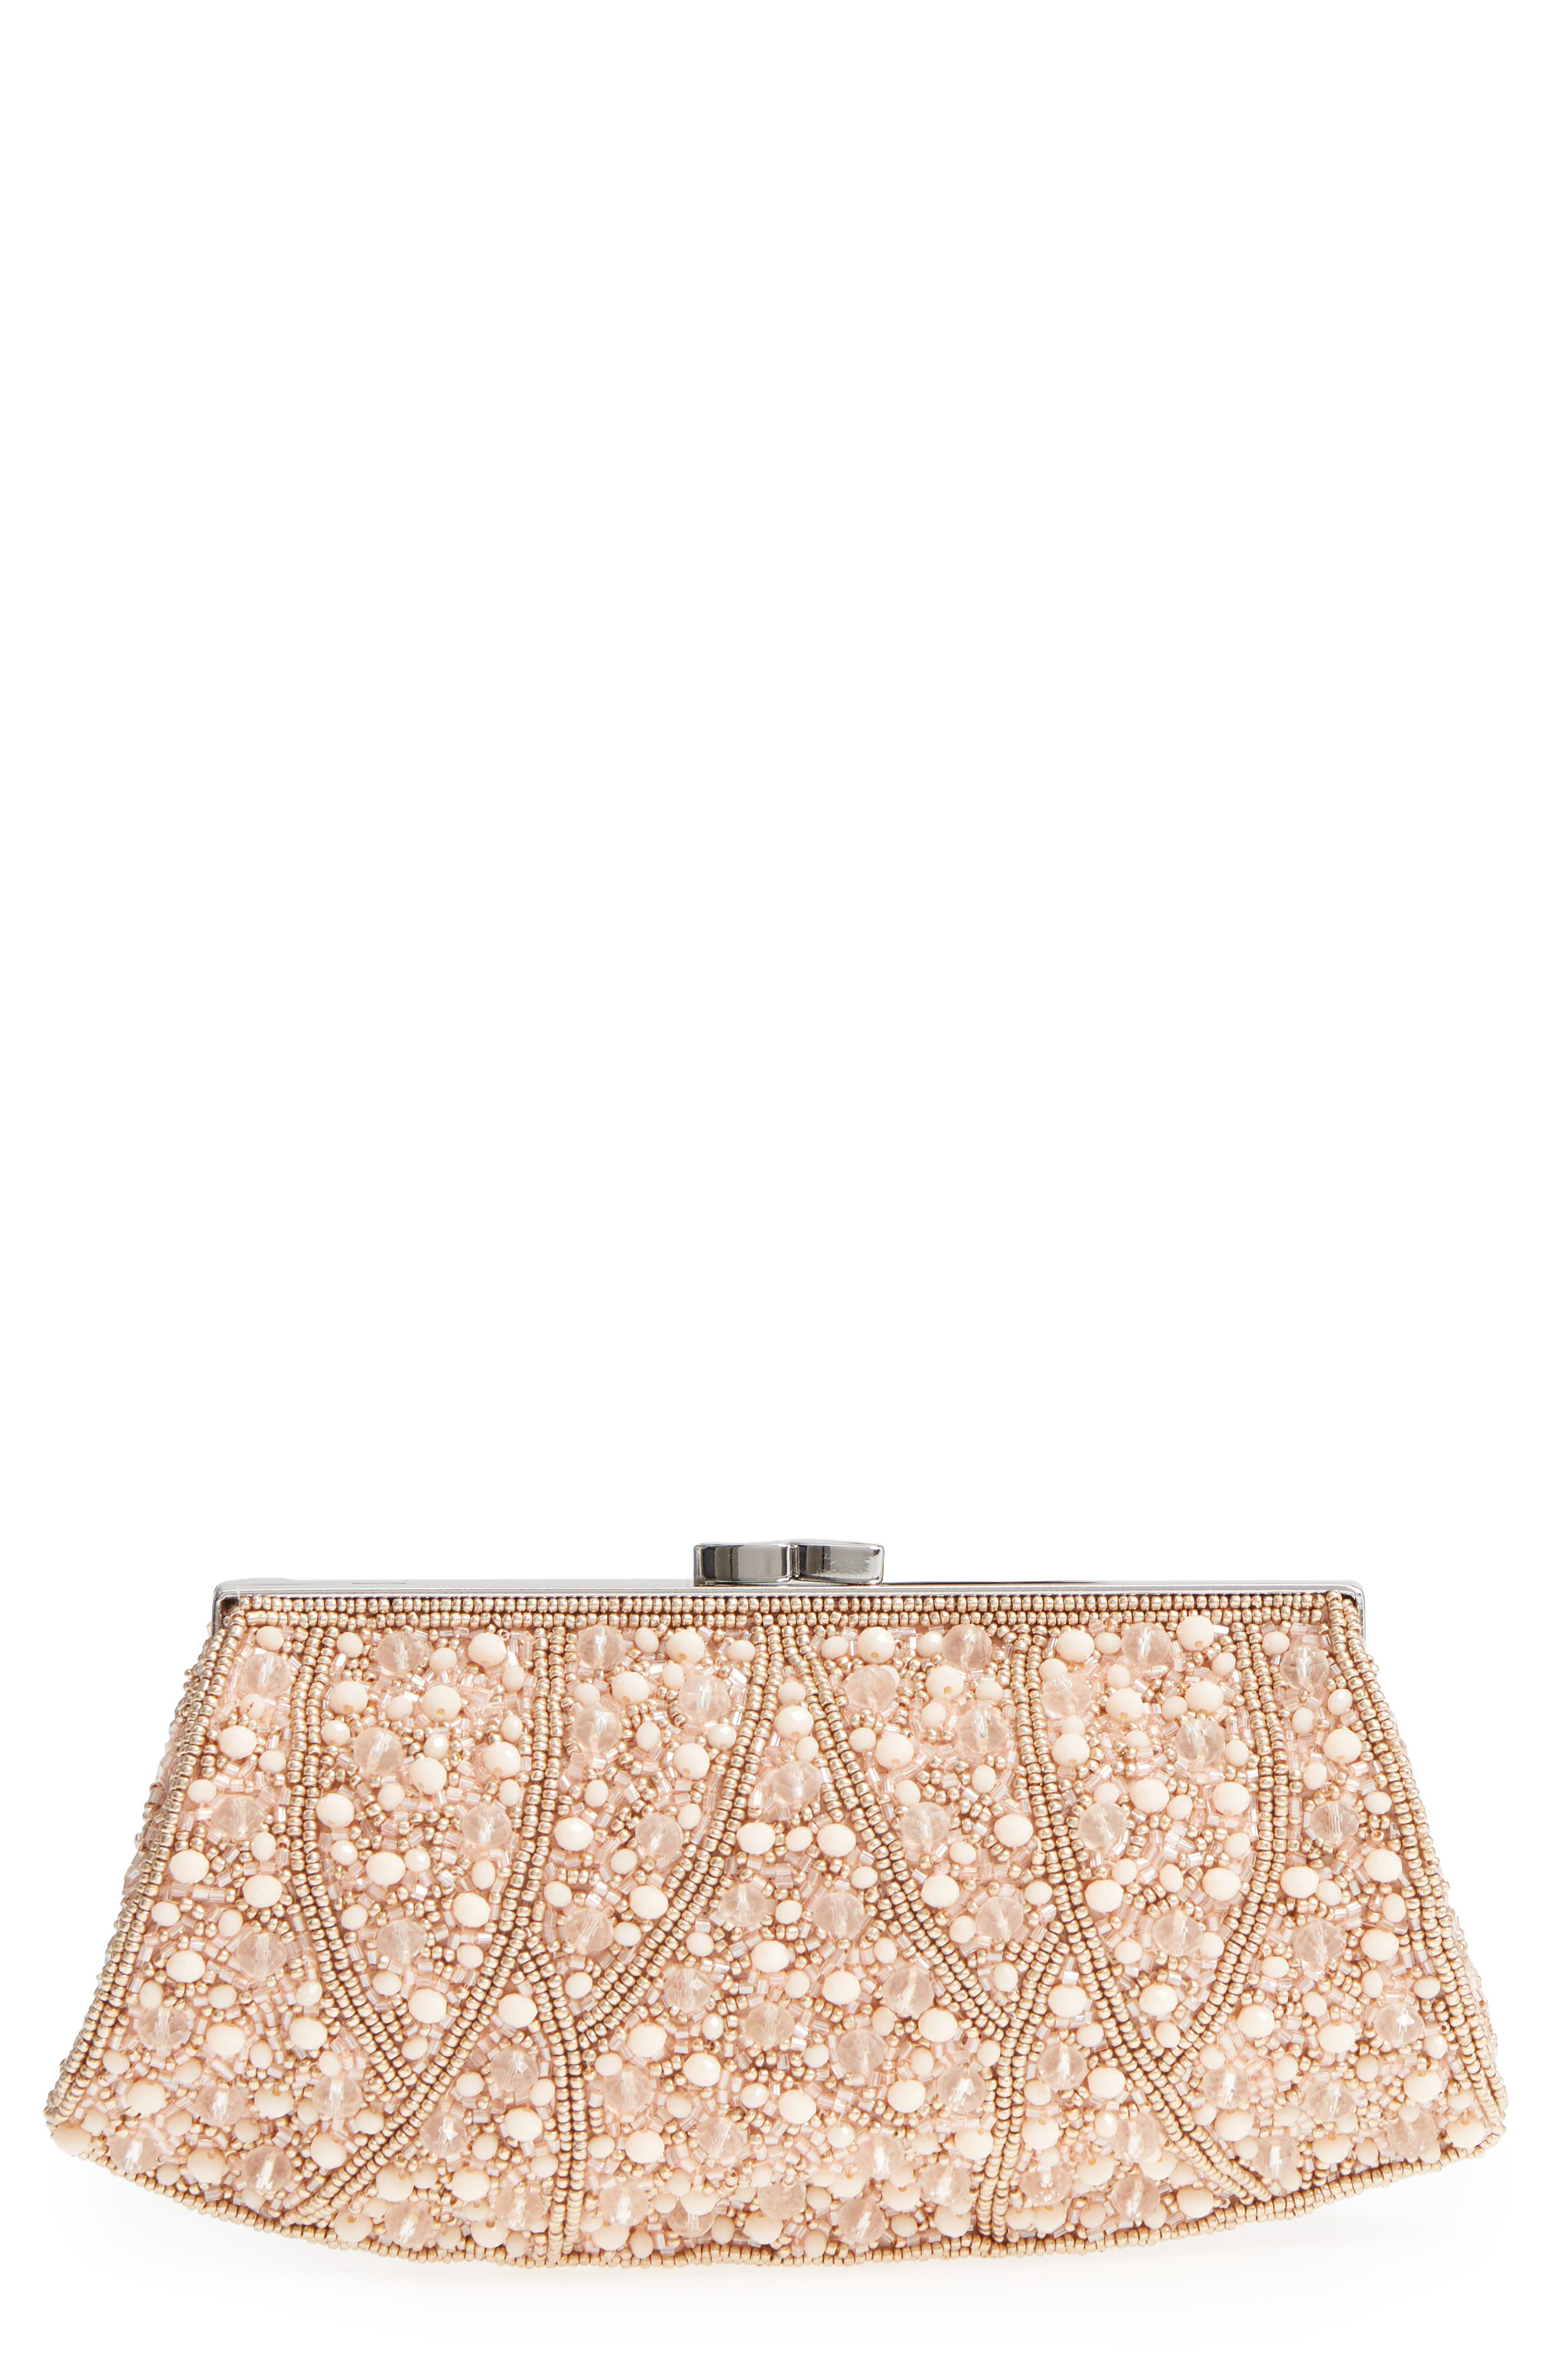 Beaded Rivoli Clutch,                             Main thumbnail 1, color,                             Blush